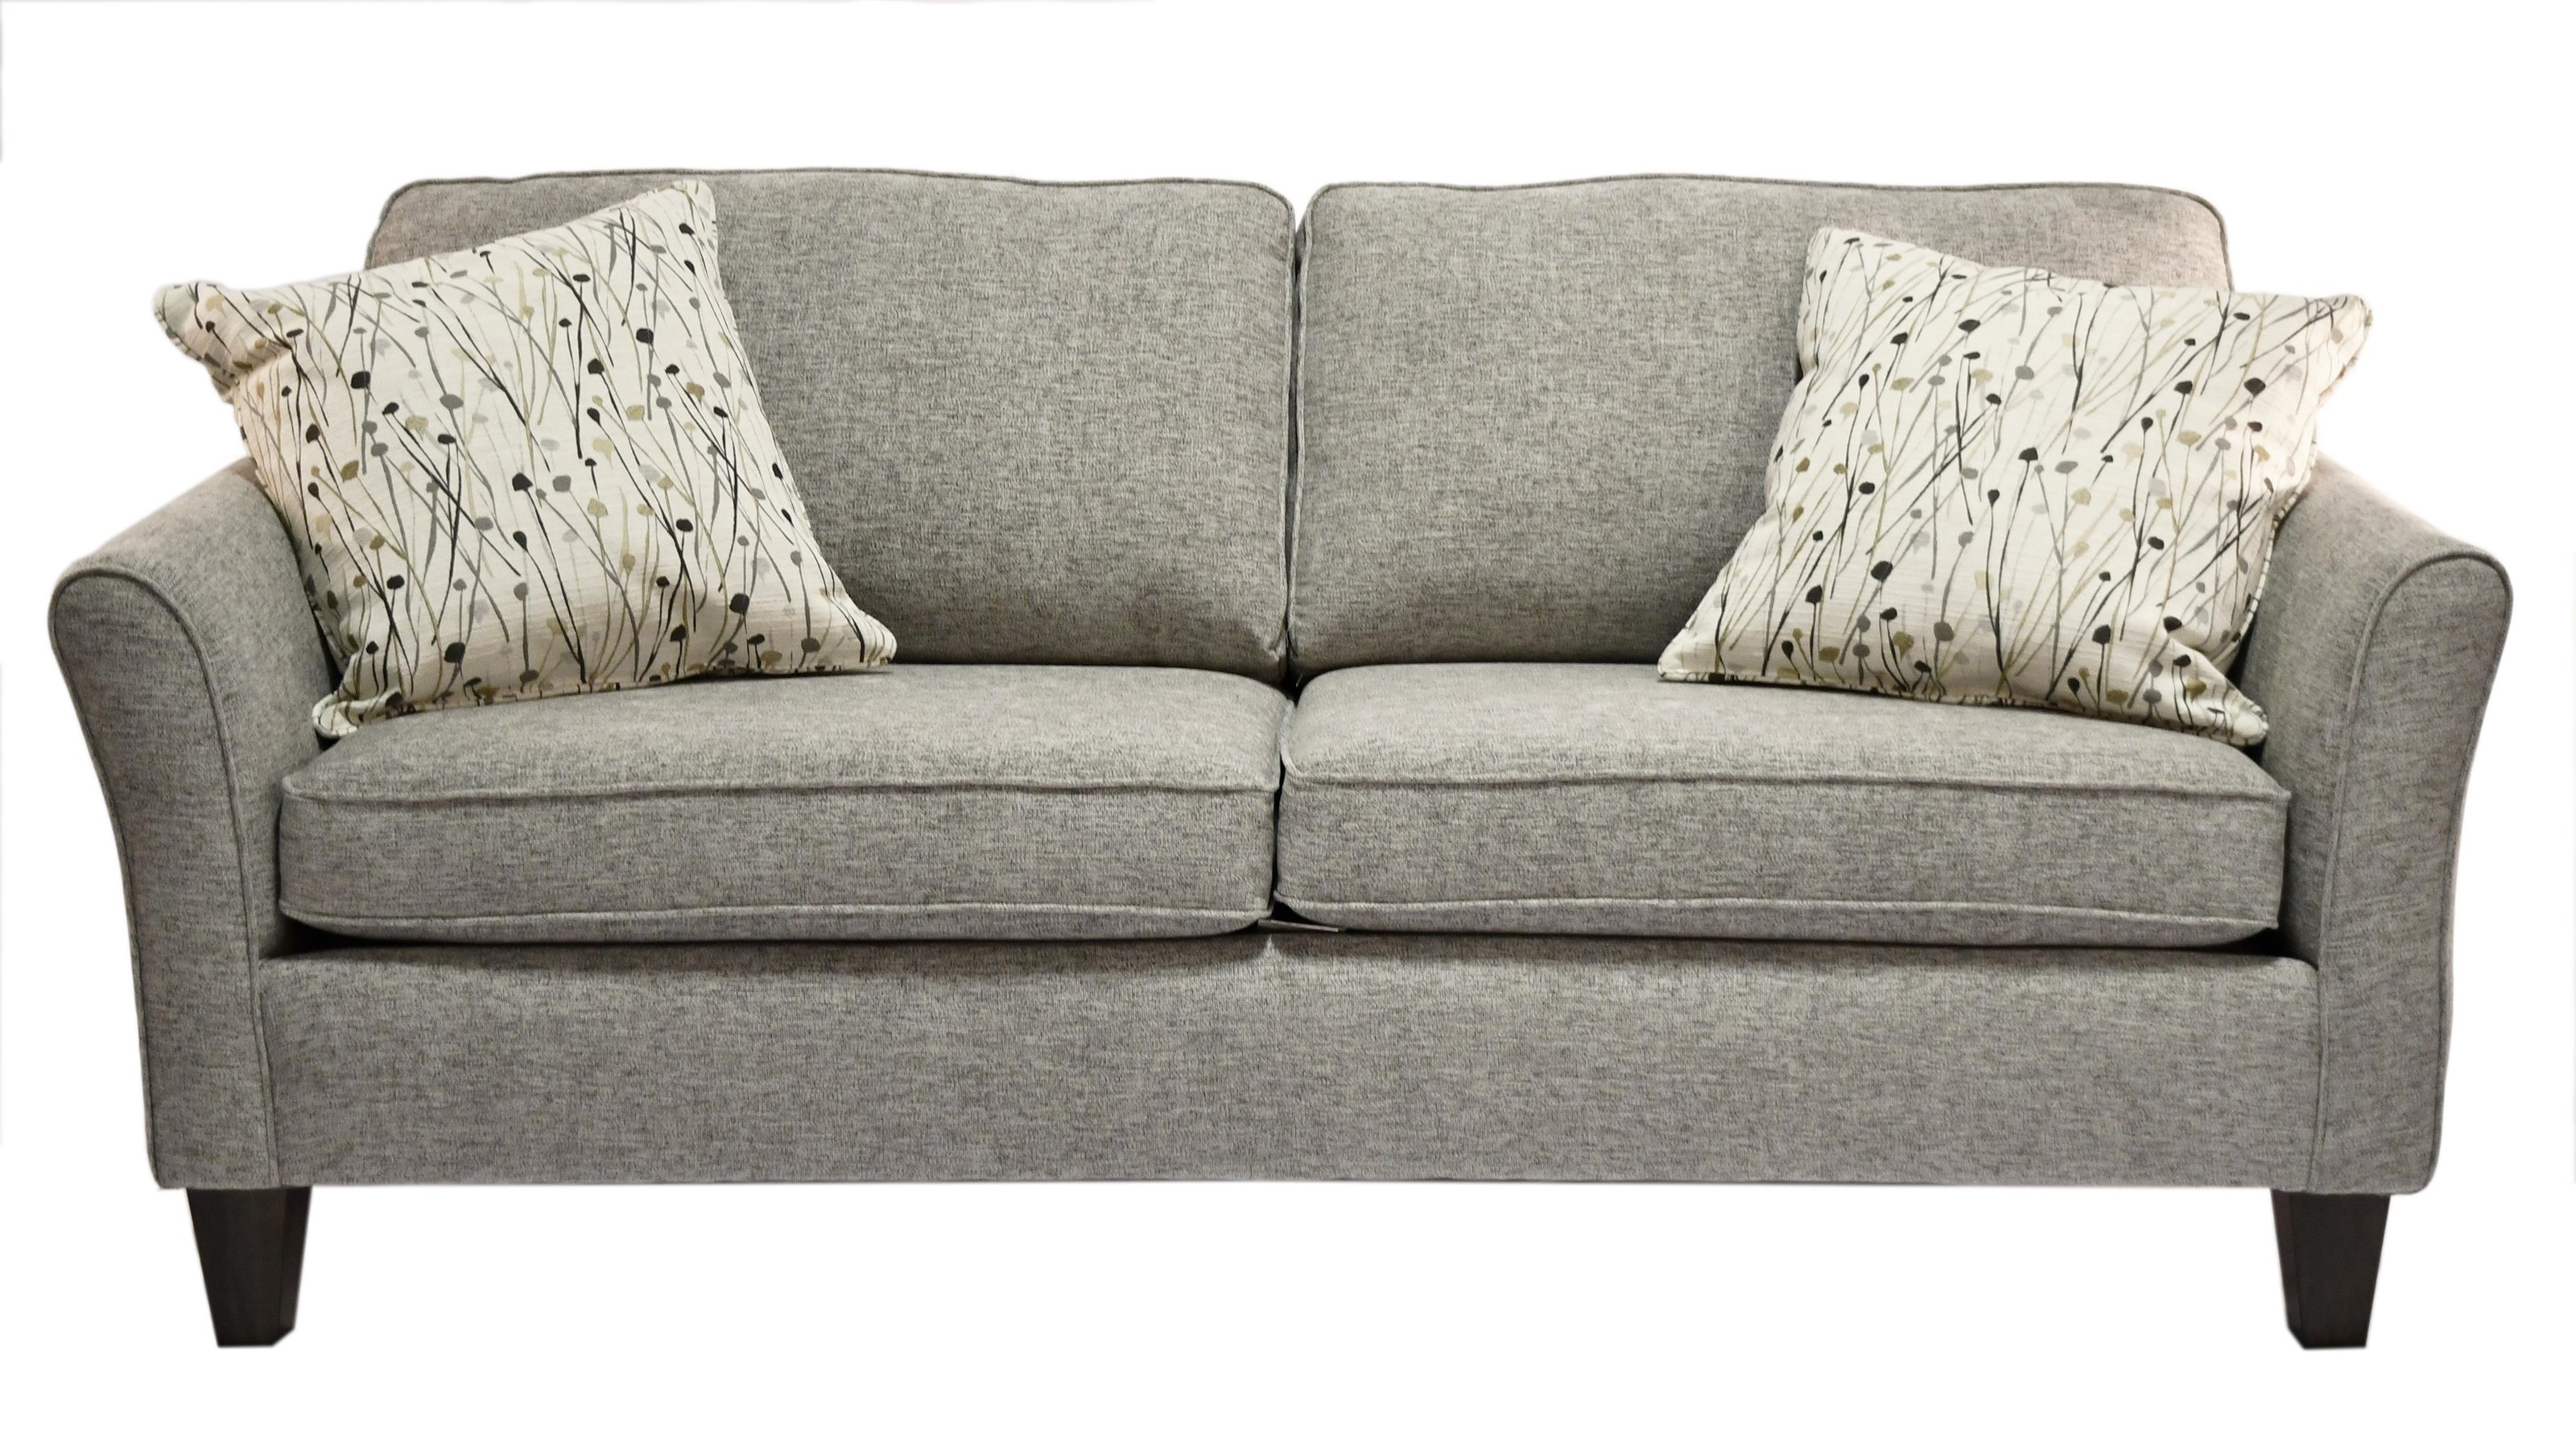 Colten Condo Sofa by Southside Designs at Bennett's Furniture and Mattresses